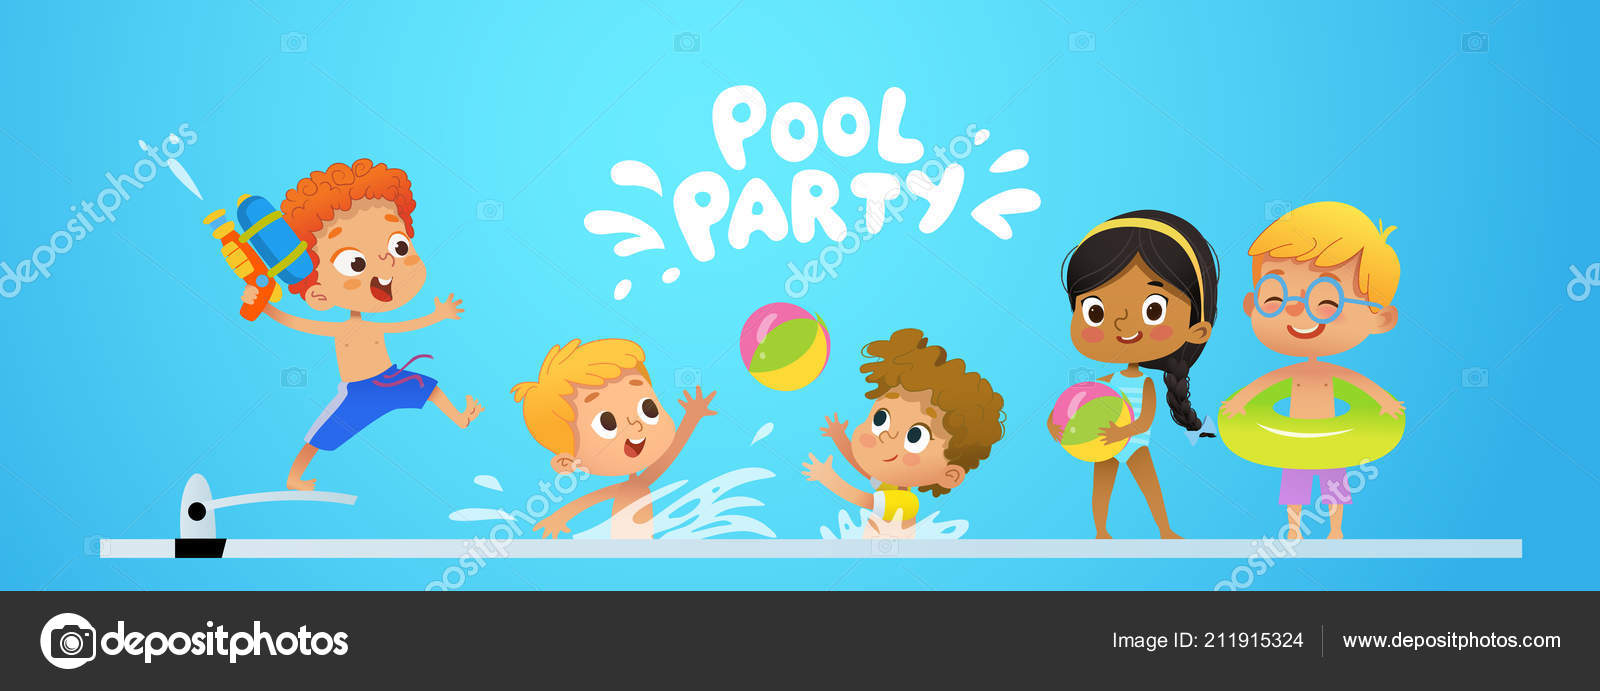 Pool Party Invitation Template Baner Multiracial Children Have Fun